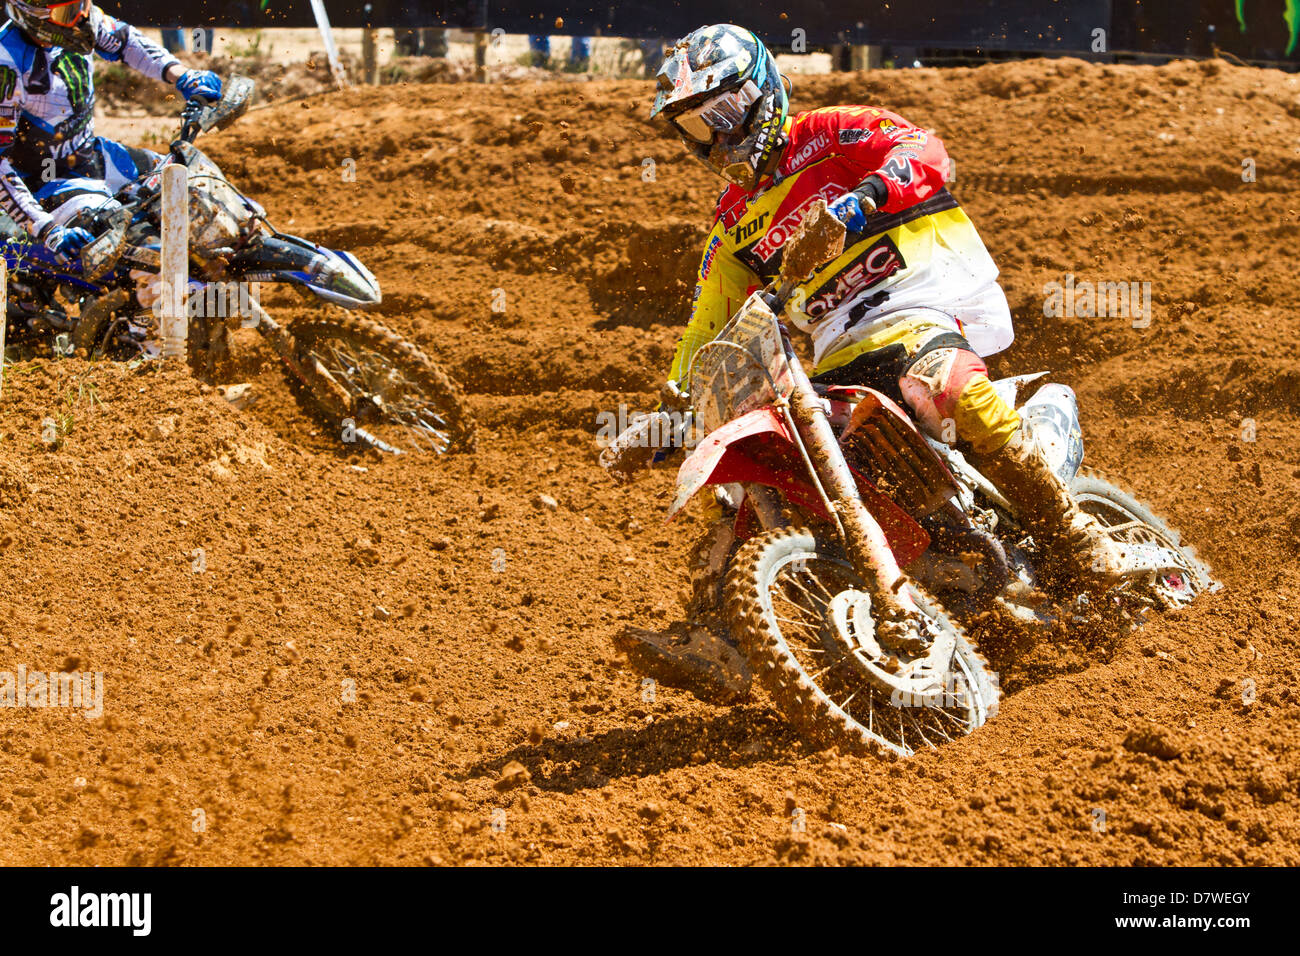 agueda, Portugal, 5th May 2013, World Championship MX1, Italian David philippaerts with a Honda, 8th race 1 and - Stock Image